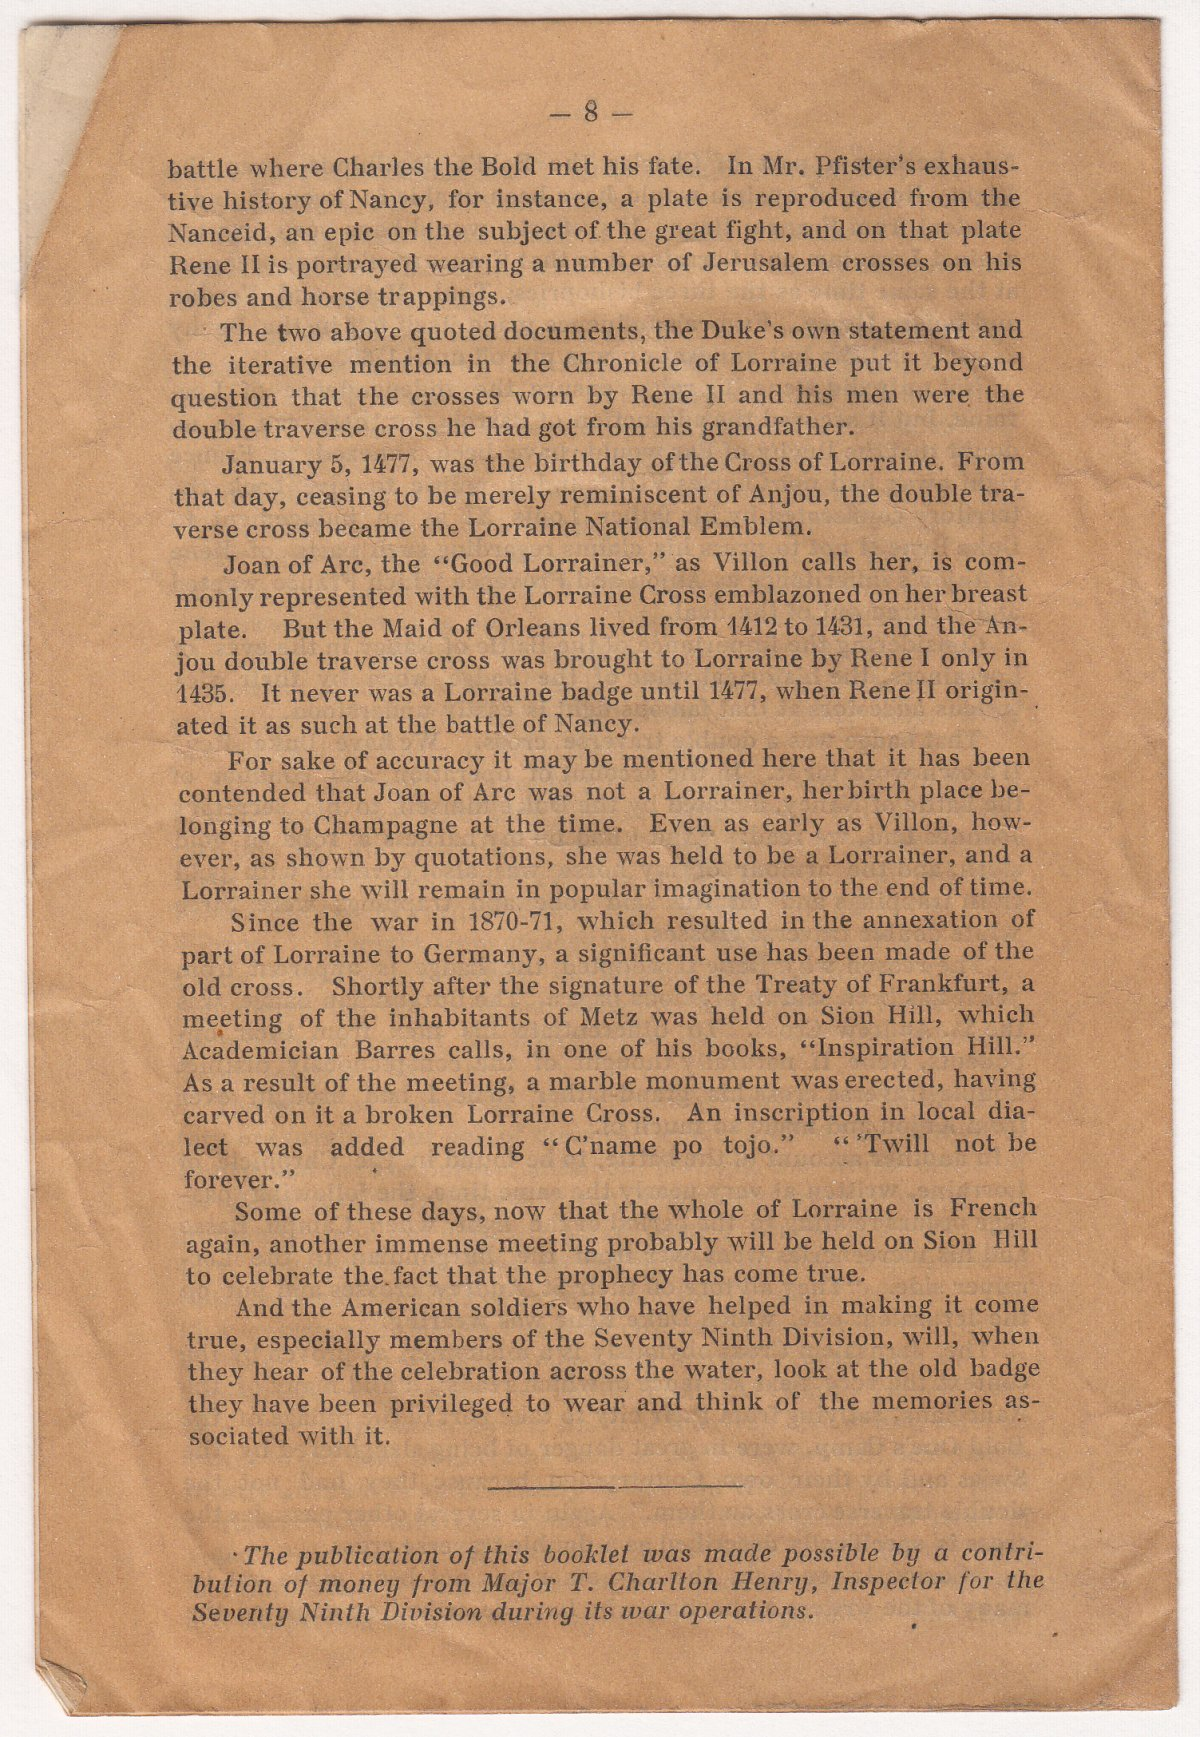 The Lorraine Cross Story of the 79th Division Insignia - Page 6